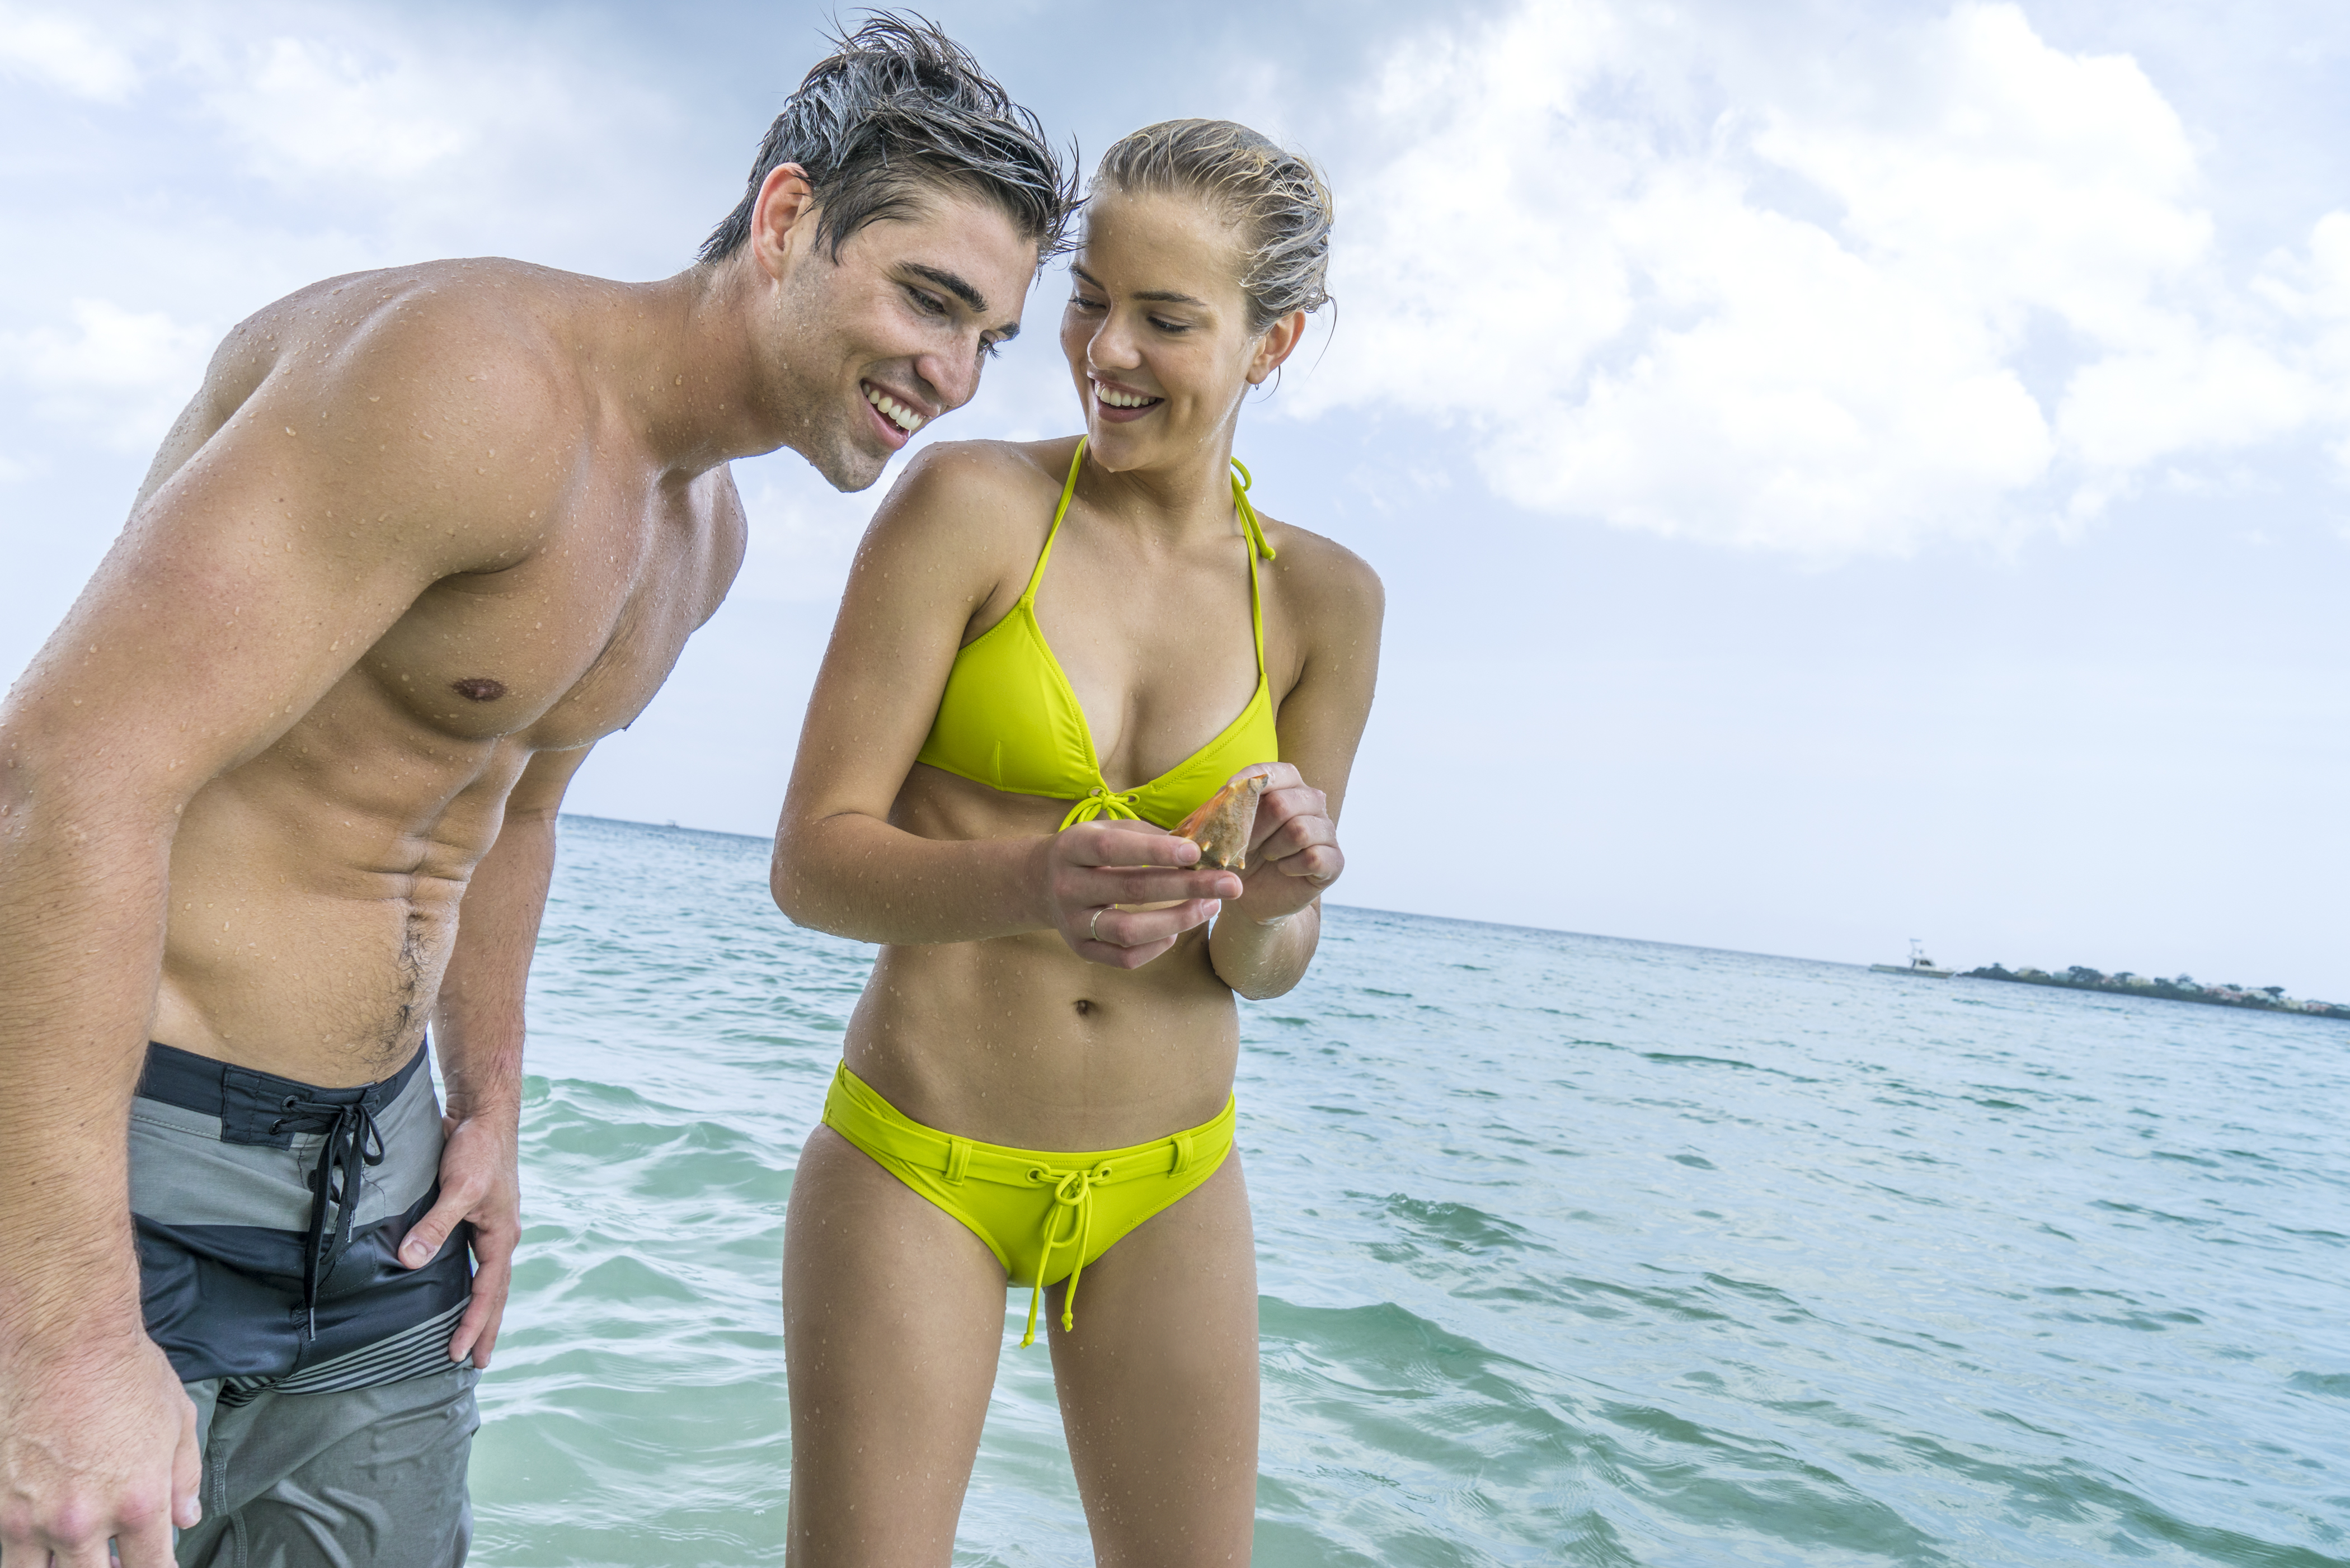 Travel Agency All-Inclusive Resort Couples Negril 08